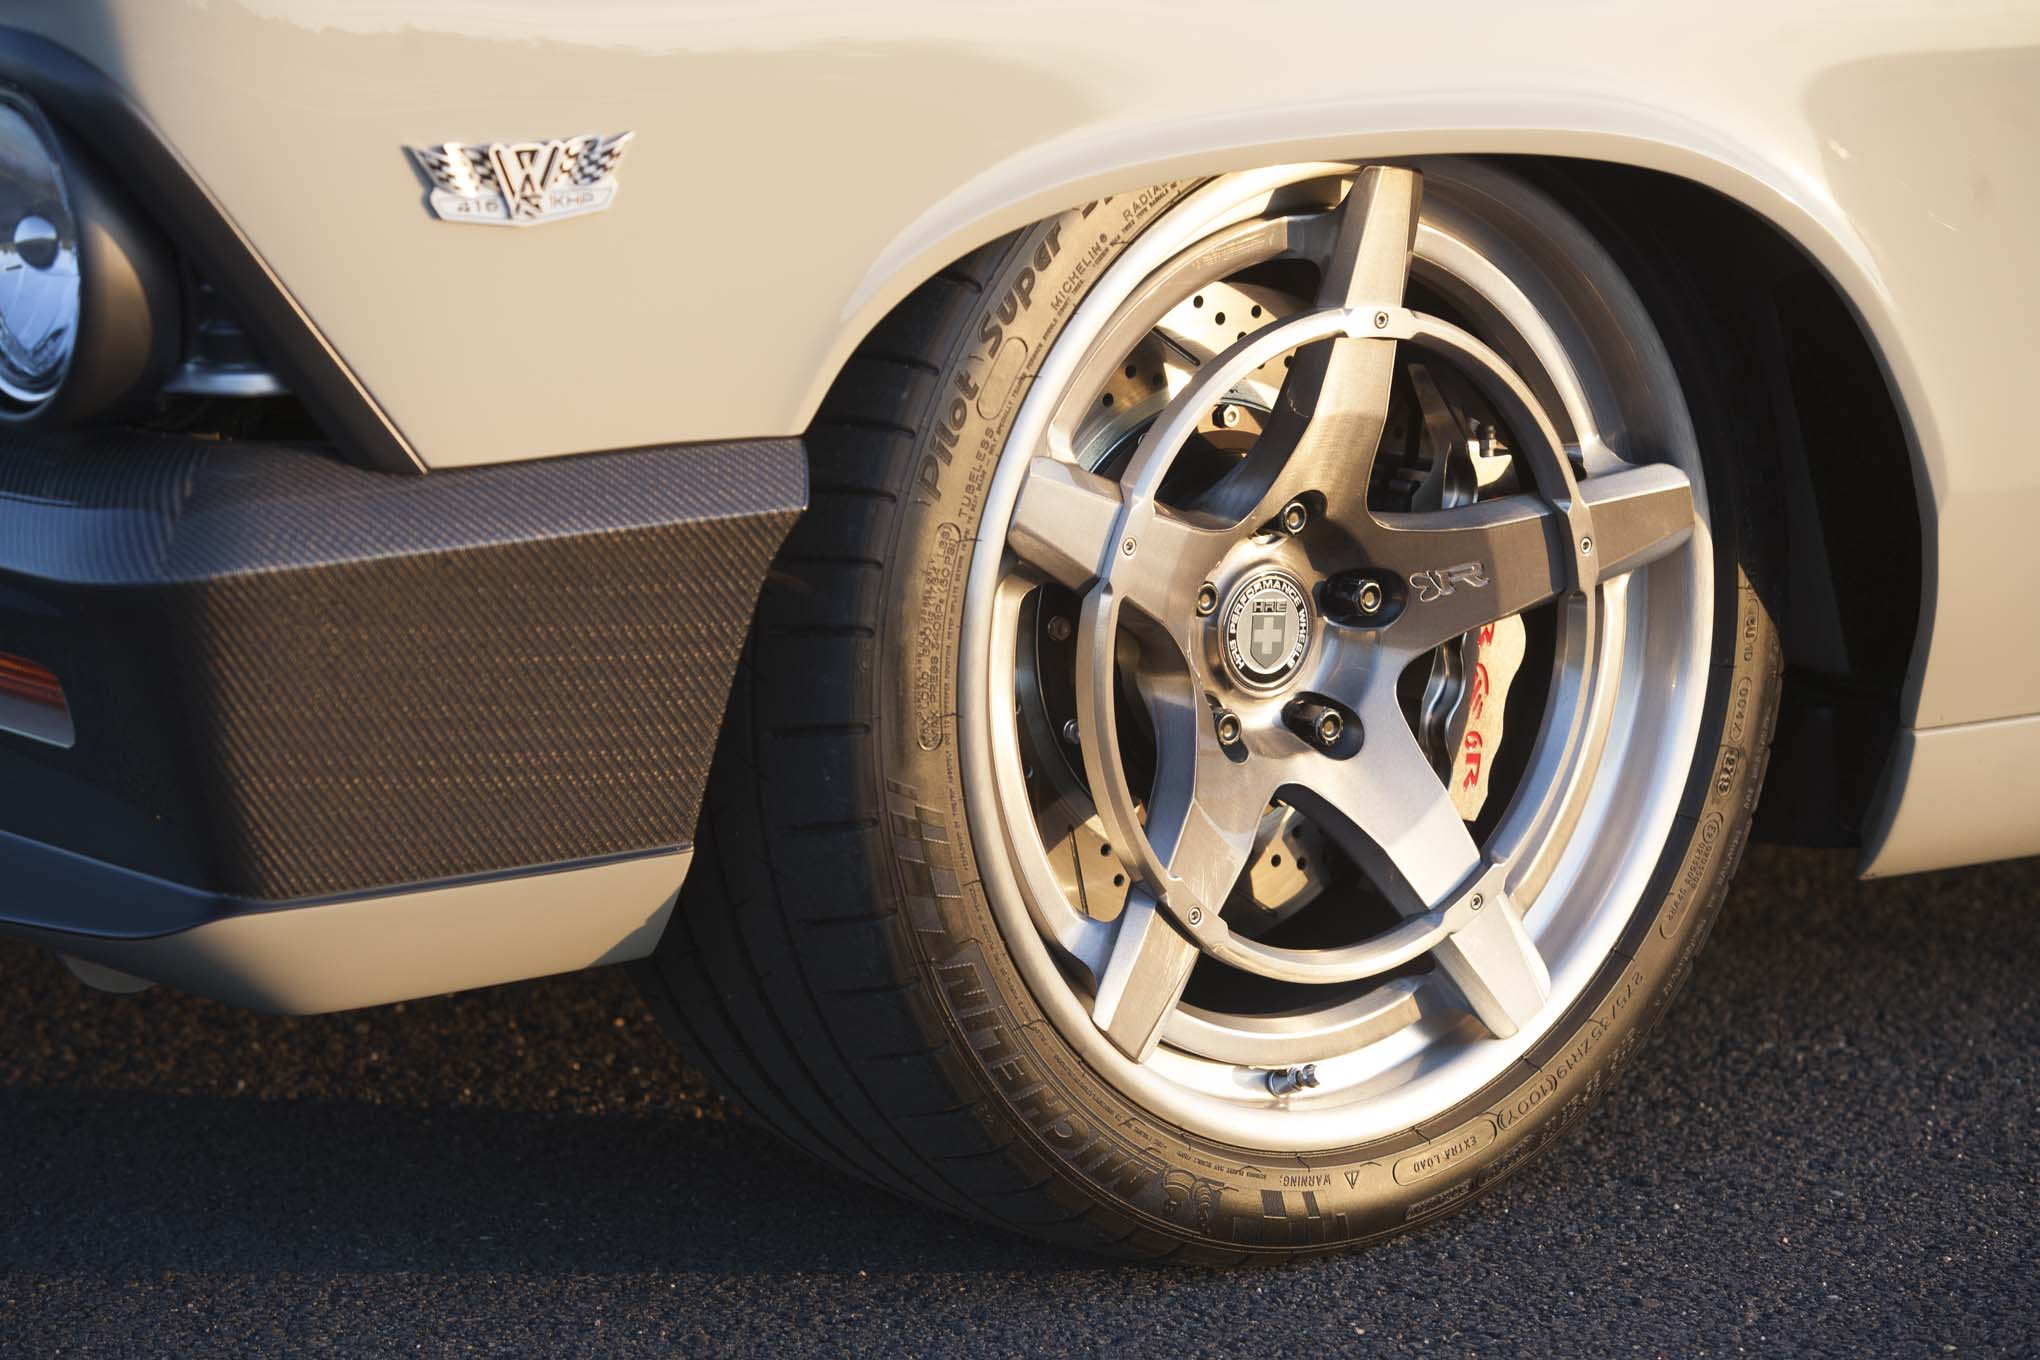 Brakes are from Baer, with 15-inch two-piece rotors in the front, 14-inch rotors in the rear, and six-piston calipers all around.